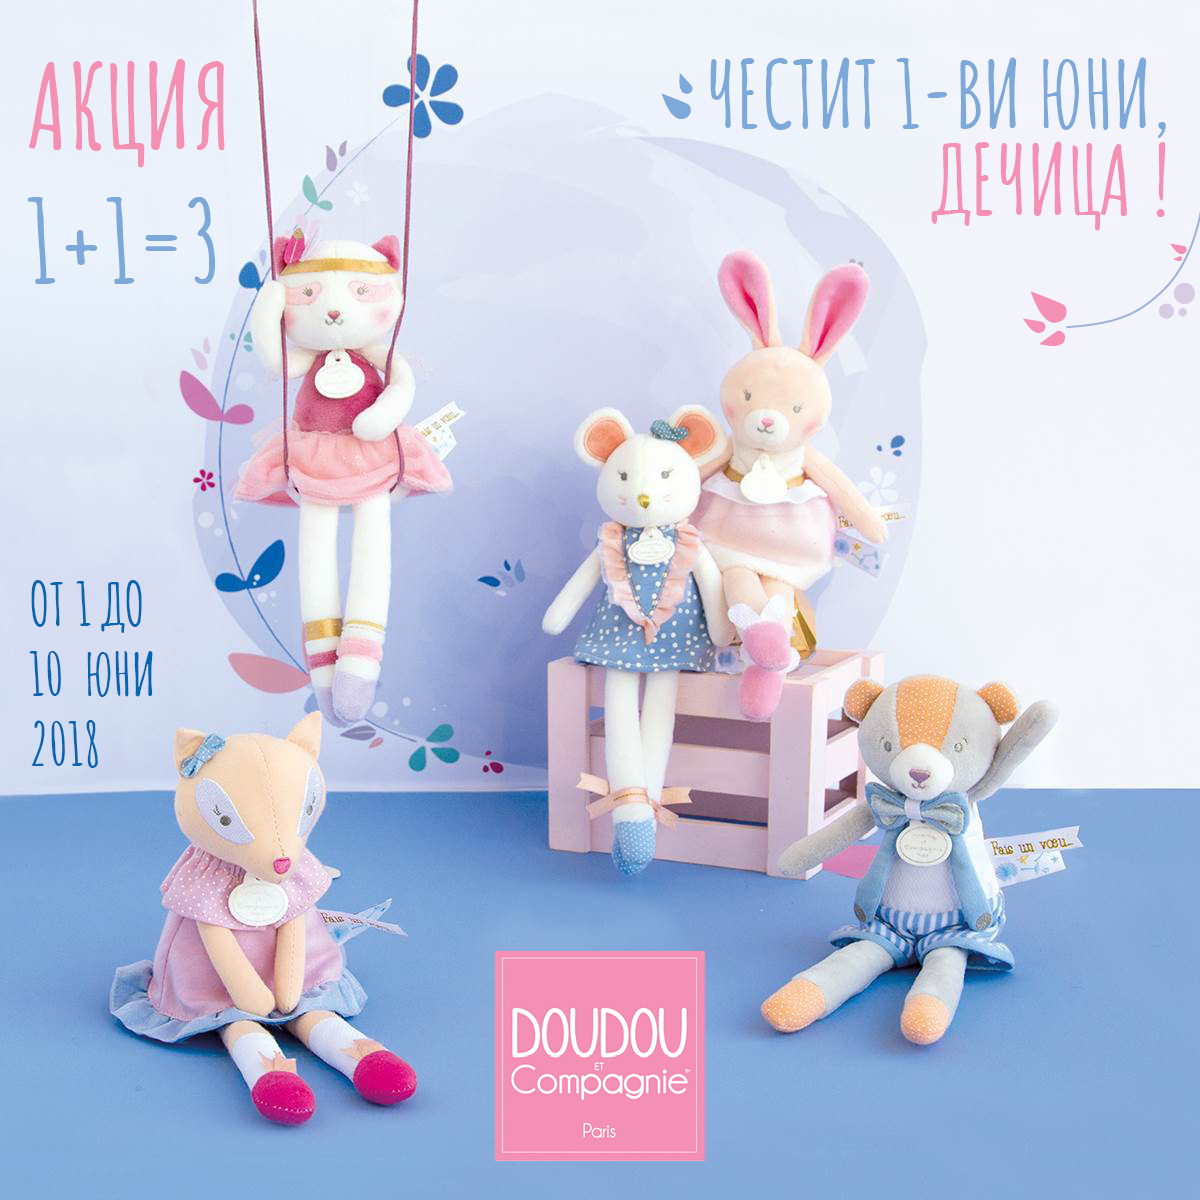 Special offer from DOUDOU et Compagnie for the Children's Day